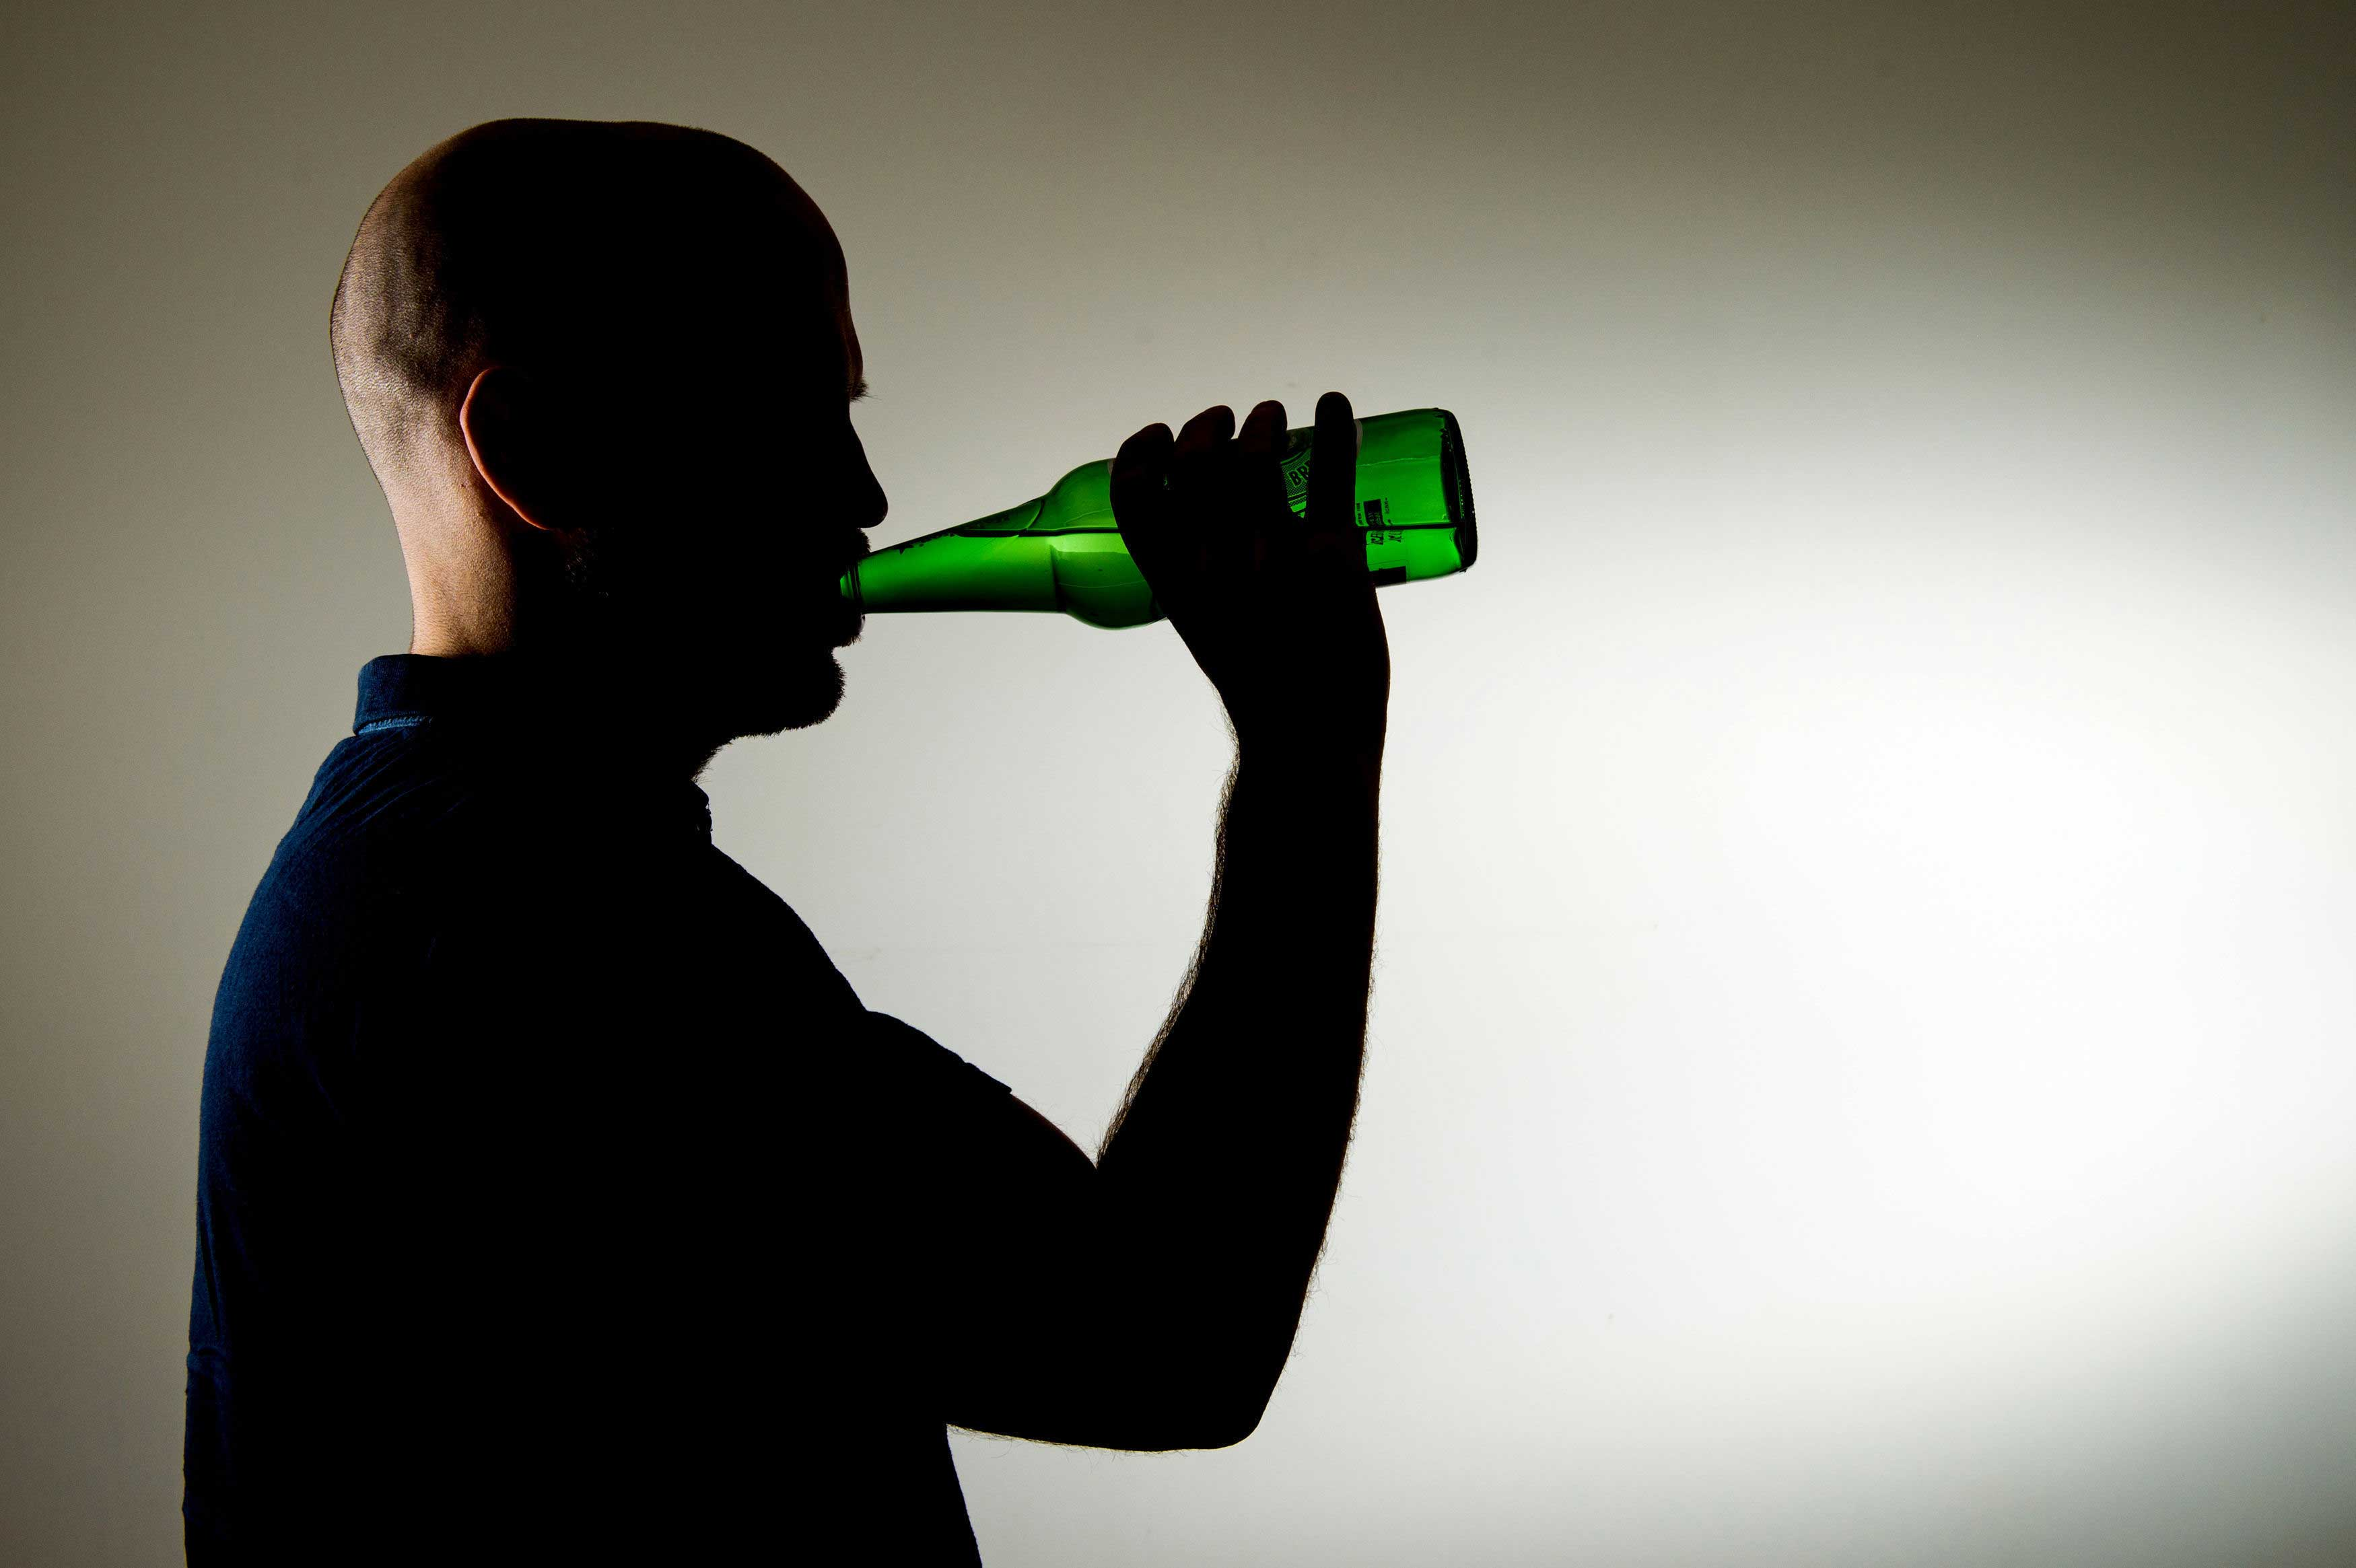 The weekly alcohol limit still carries a risk of early death